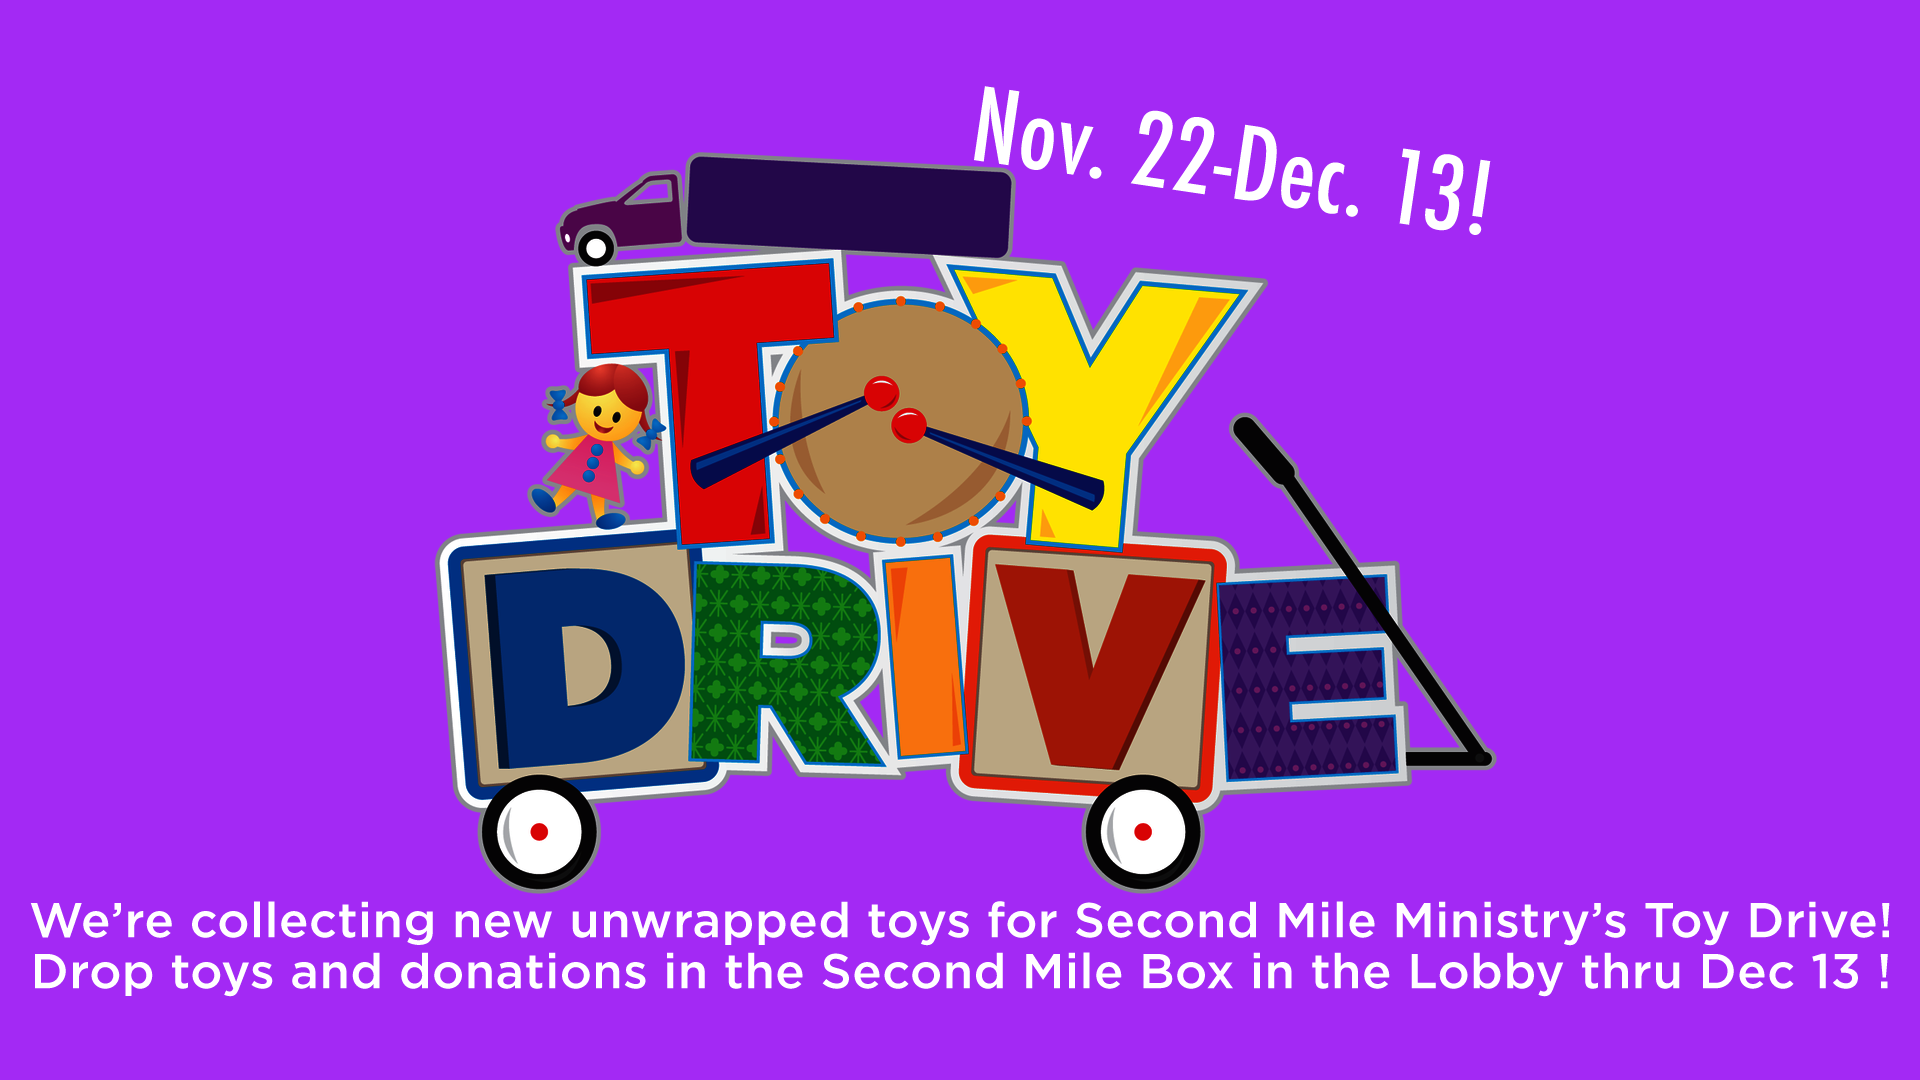 TOY DRIVE FOR SECOND MILE - Don't forget - this is the last day!   Accepting donations thru December 13  We're collecting new unwrapped toys for Second Mile Ministry's Toy Drive! Drop toys and donations in the Second Mile Box in the Lobby through December 13! To learn more about Second Mile go  HERE !